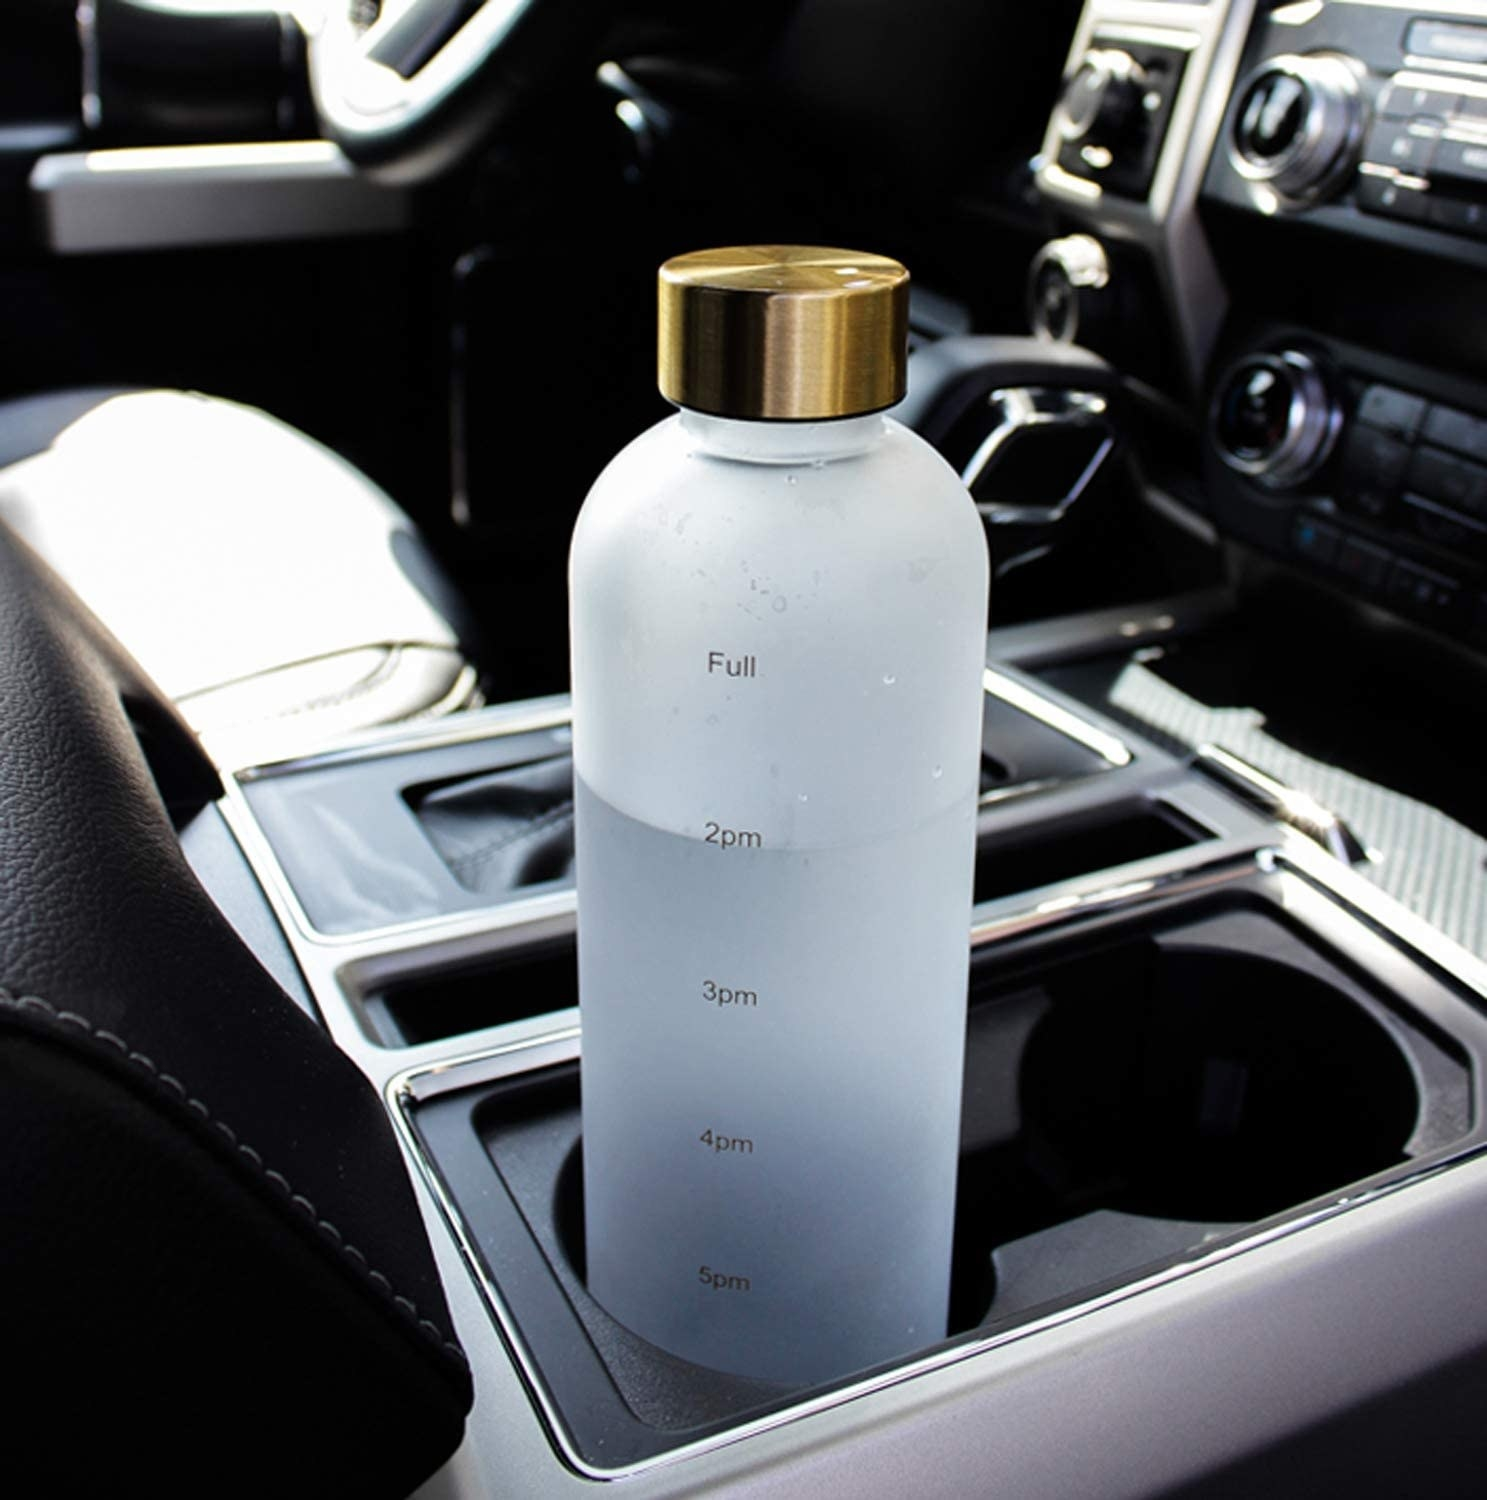 The water bottle in a car's cup holder